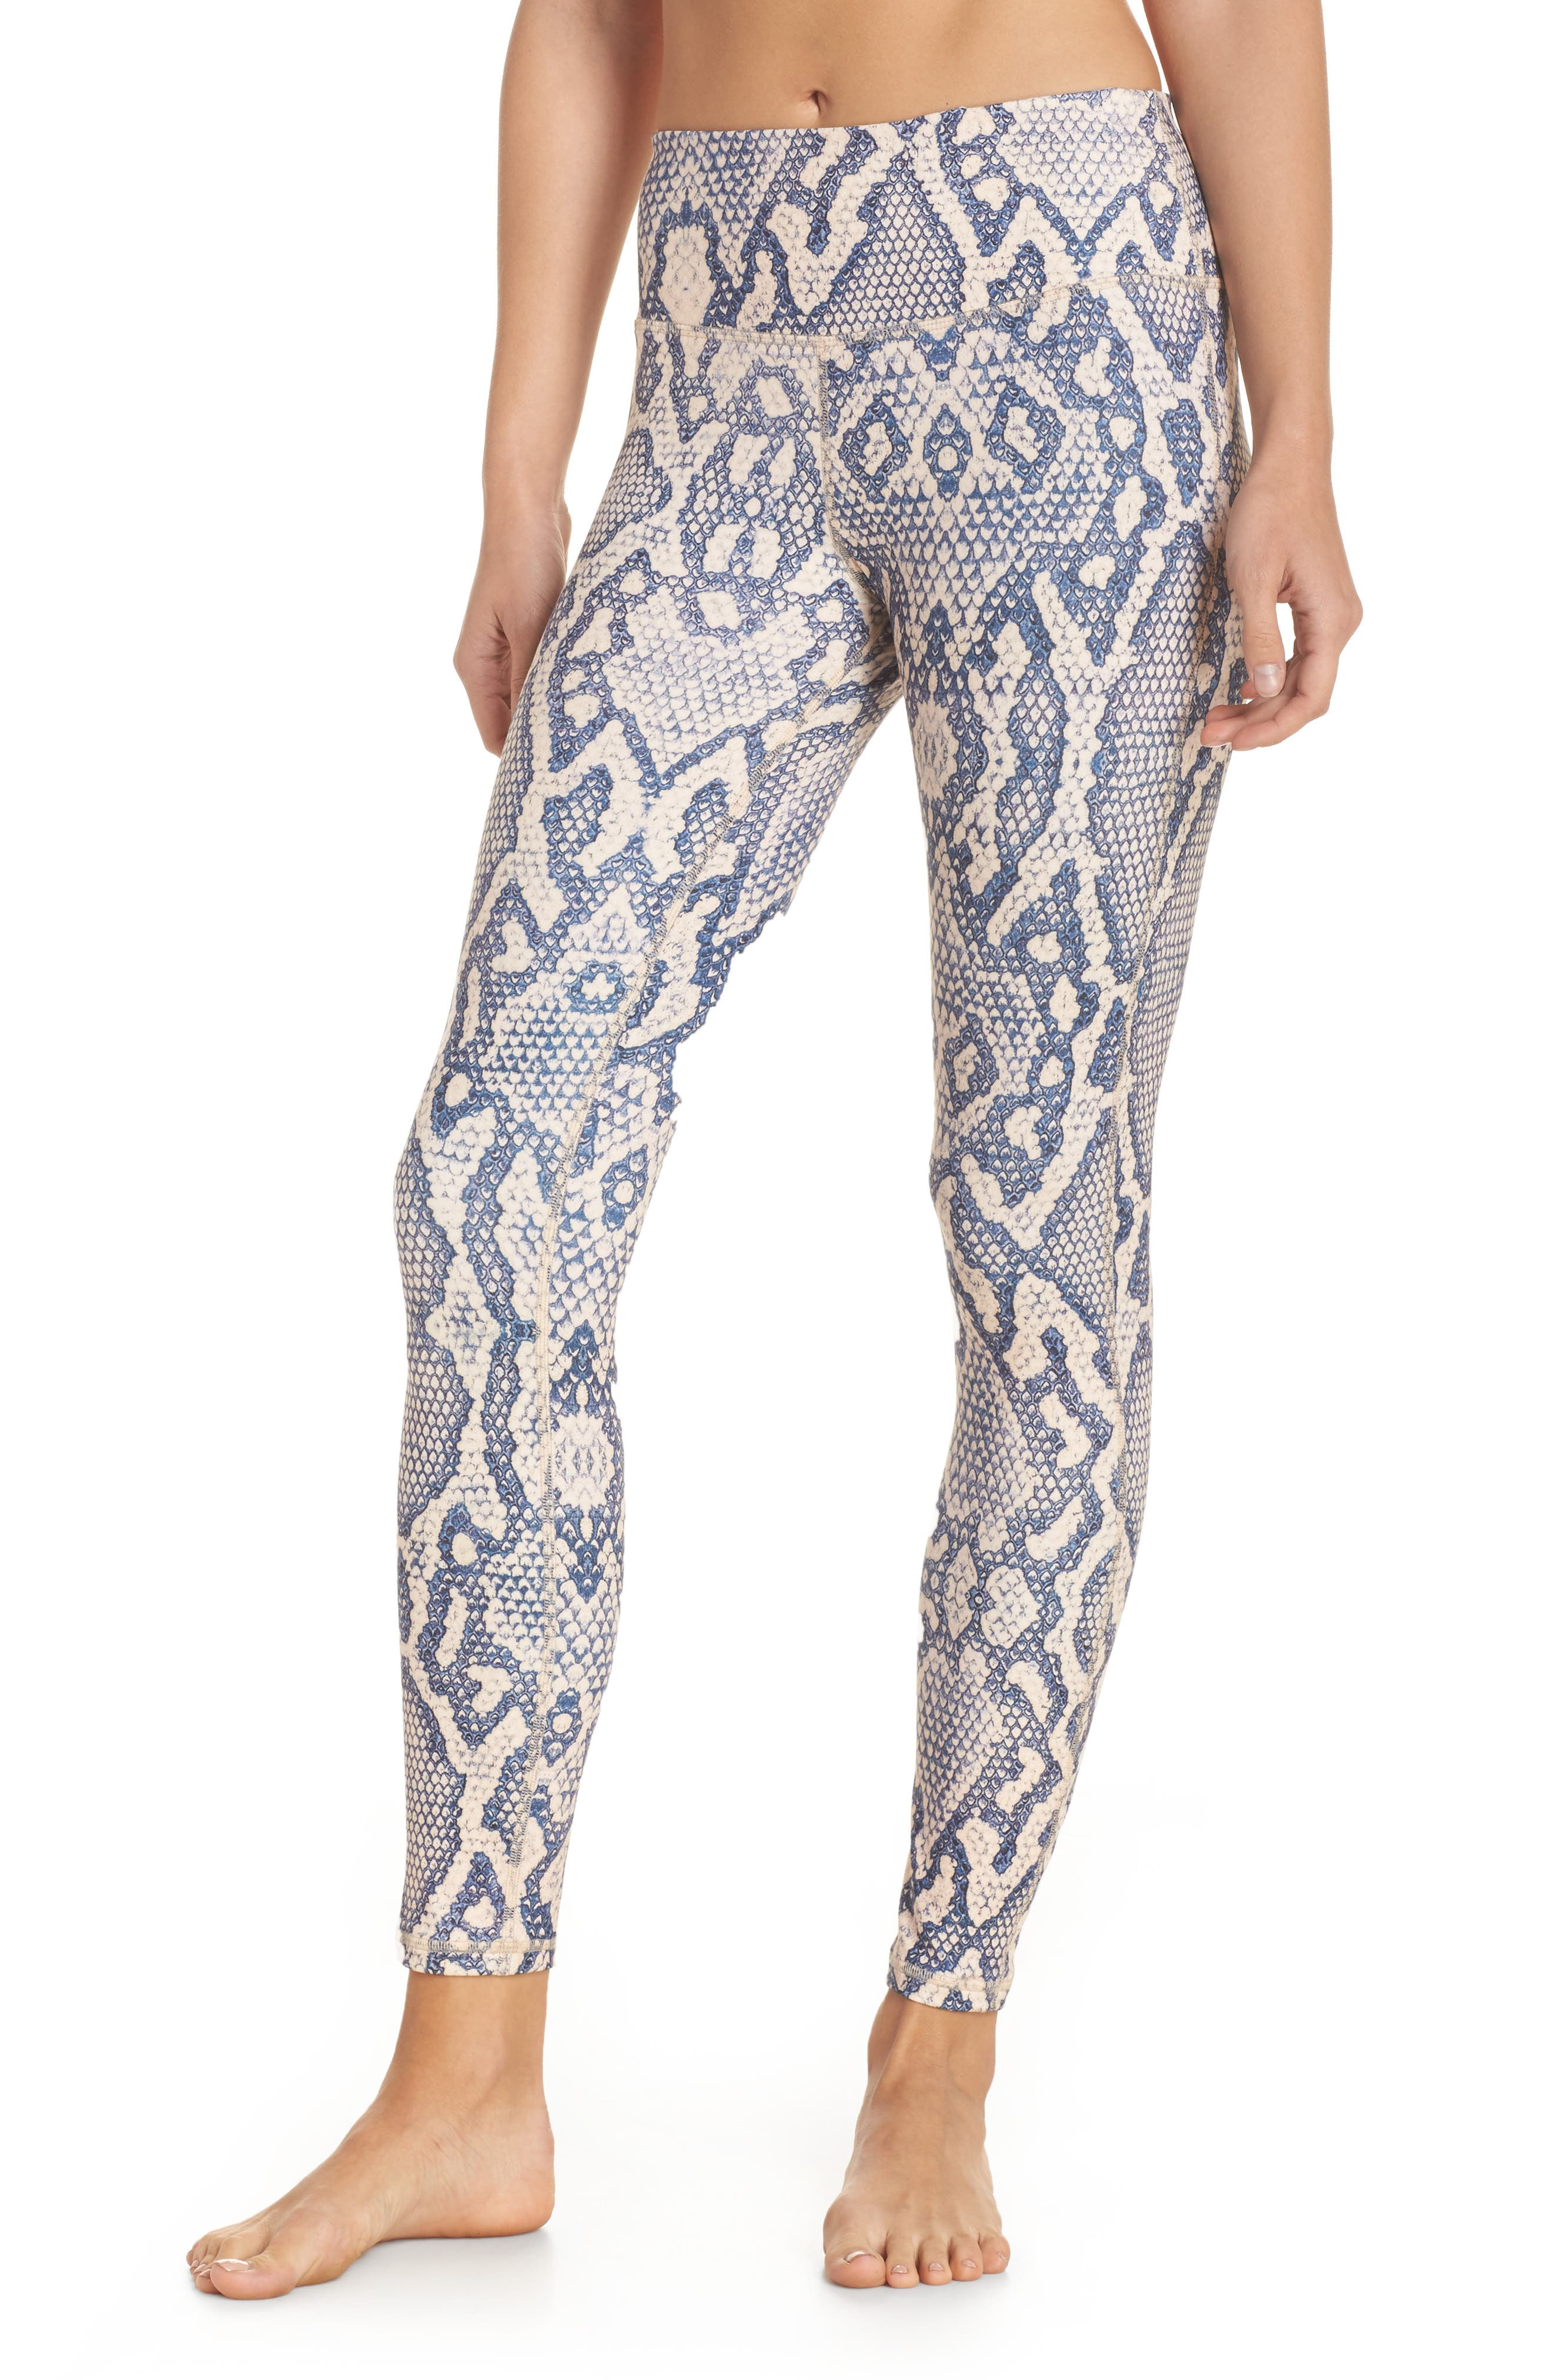 Varley Bronson 7/8 Leggings